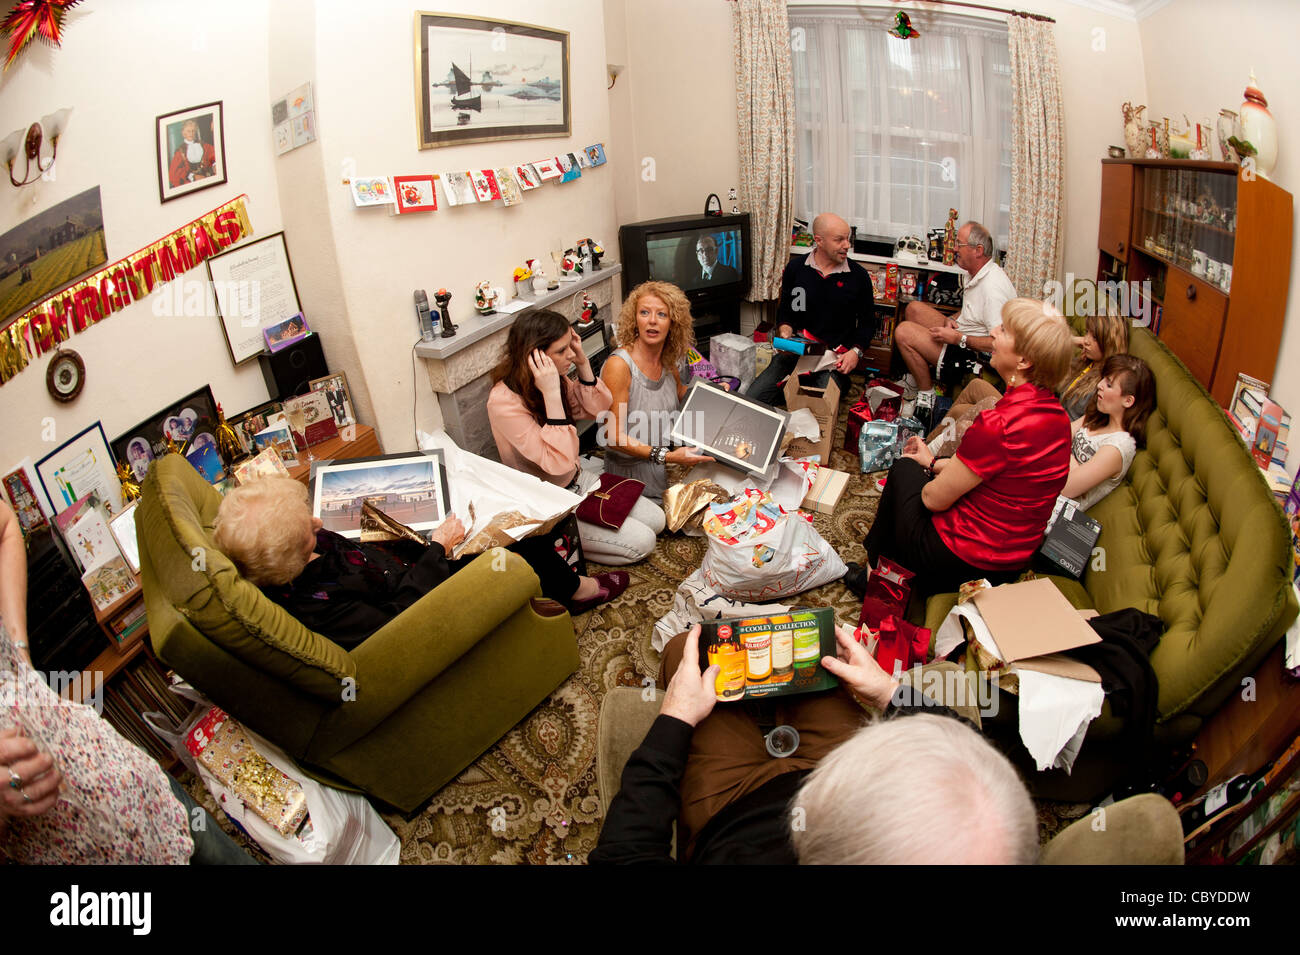 Christmas day, A family unwrapping their presents at home on xmas morning 2011 uk - Stock Image